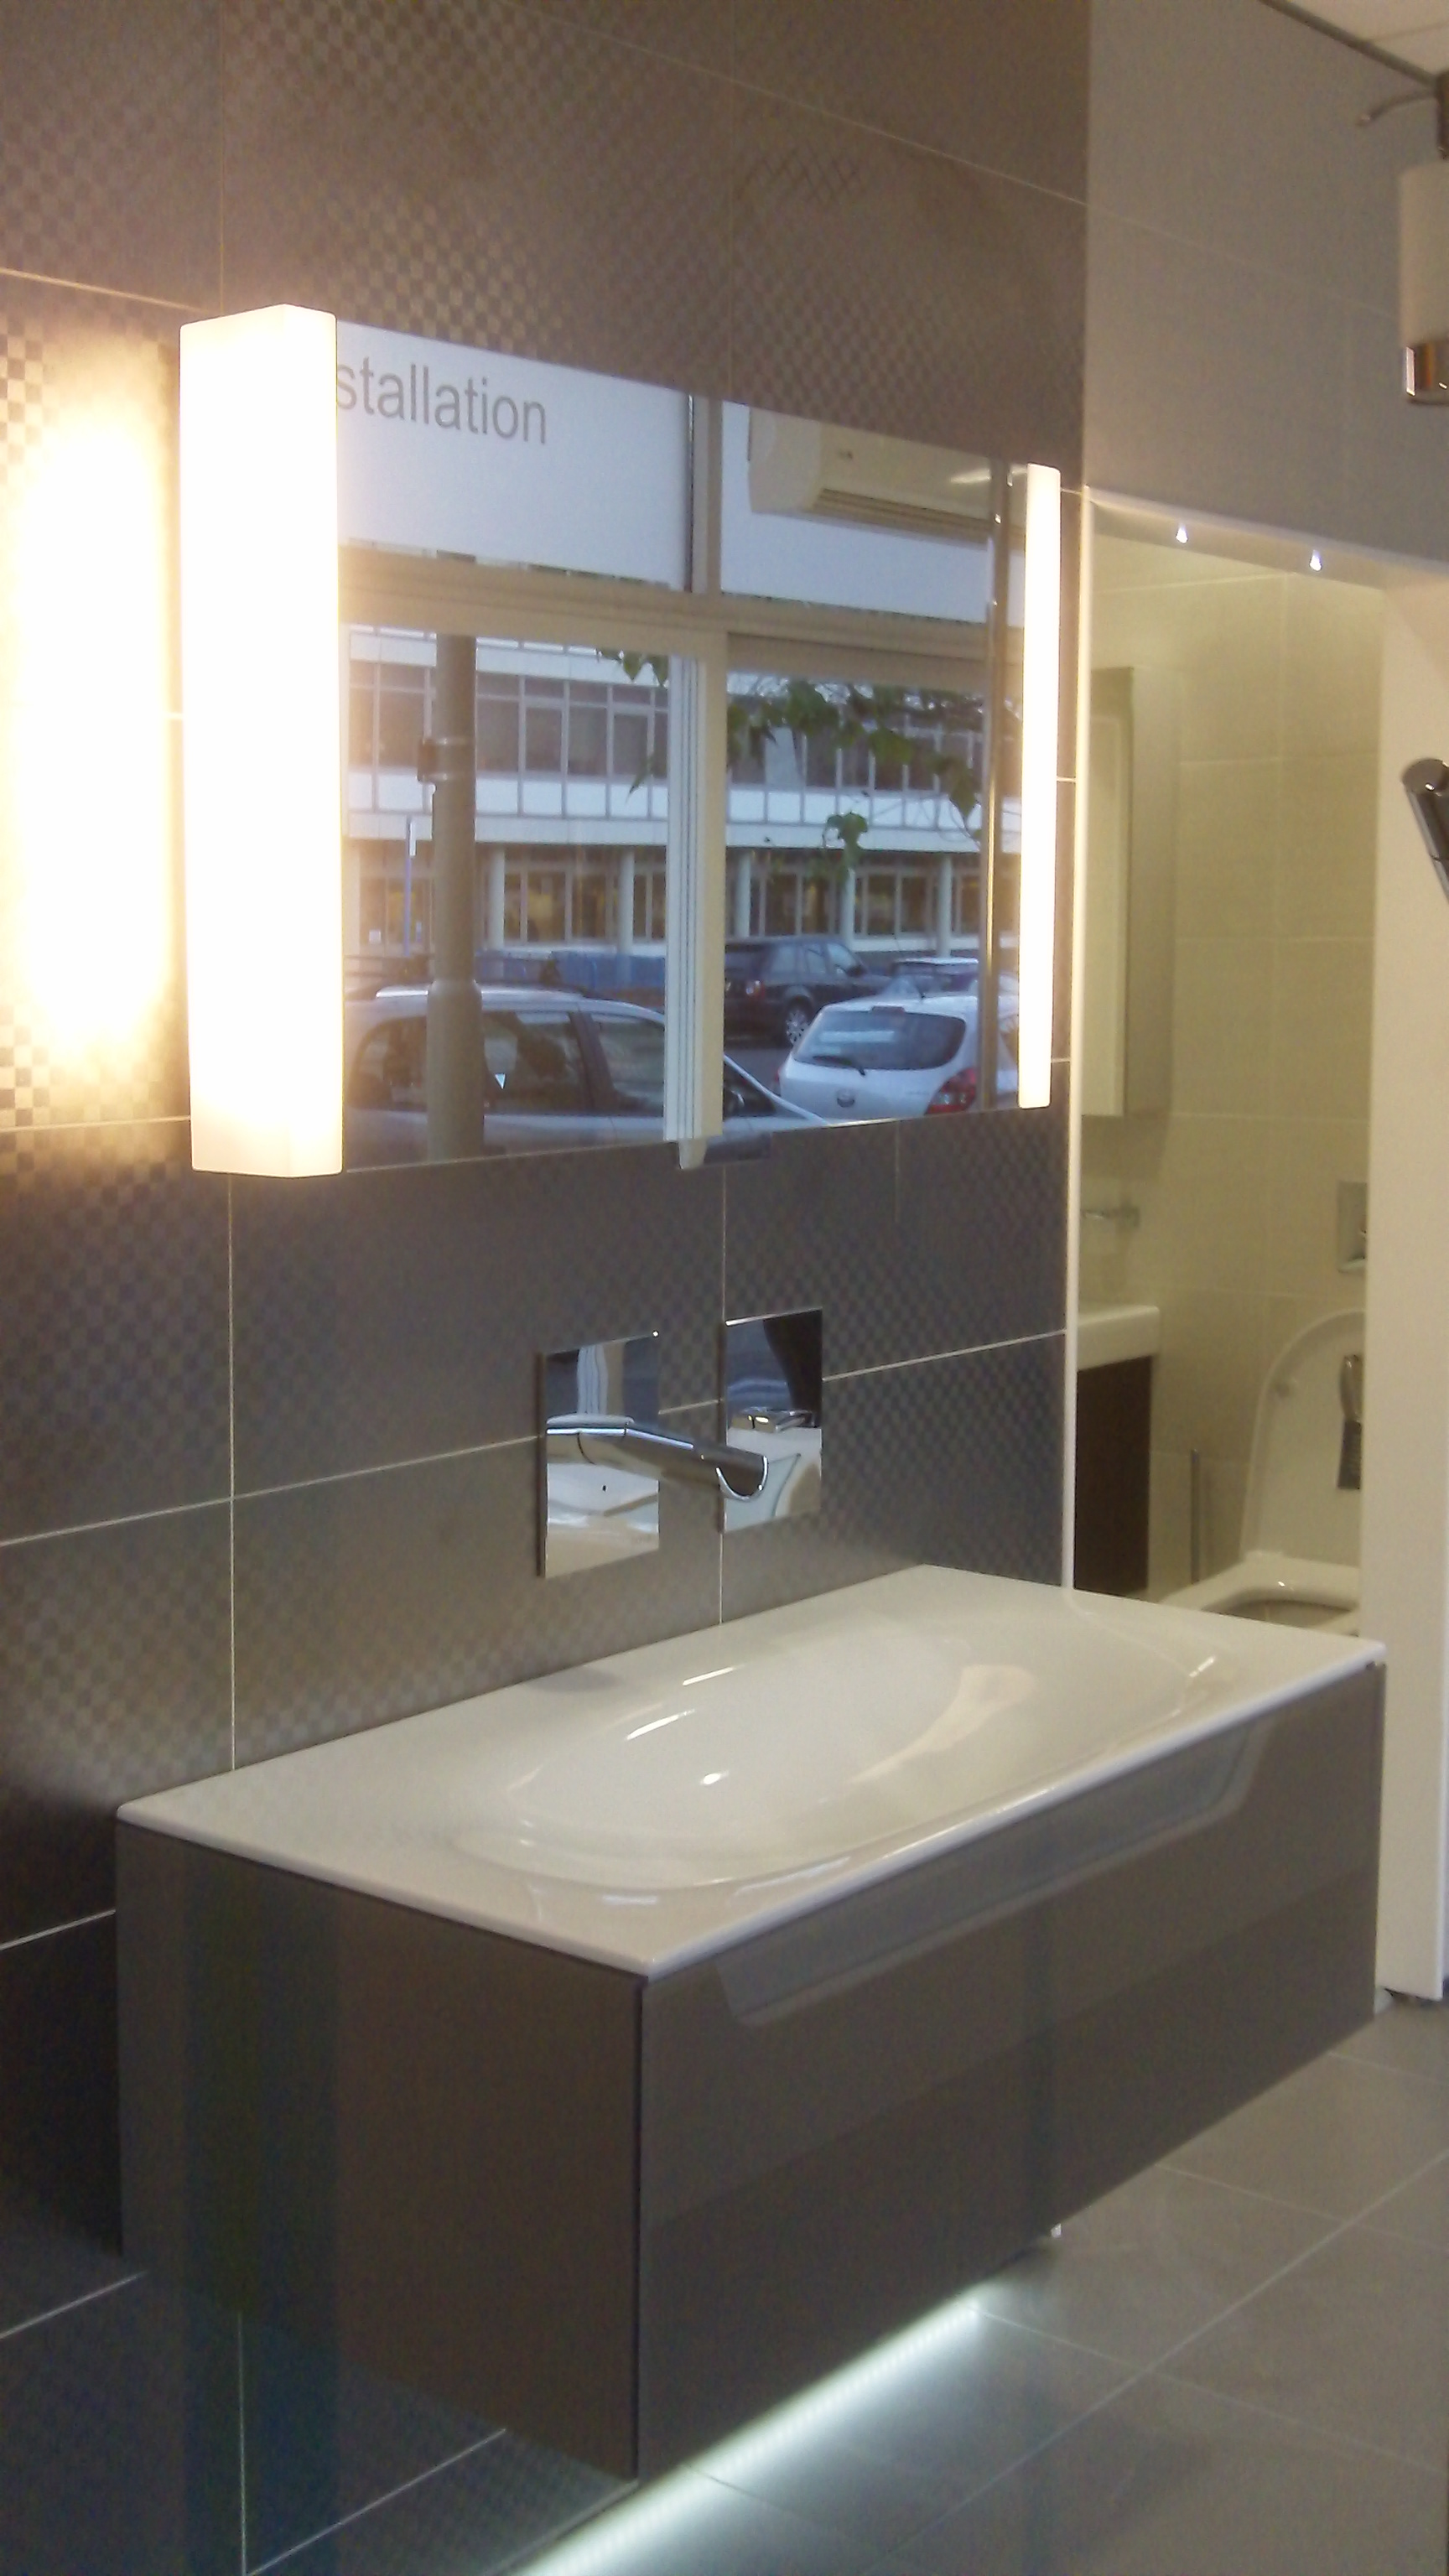 keuco bathroom cabinets keuco vanity unit display at aquarooms aquarooms co uk 13299